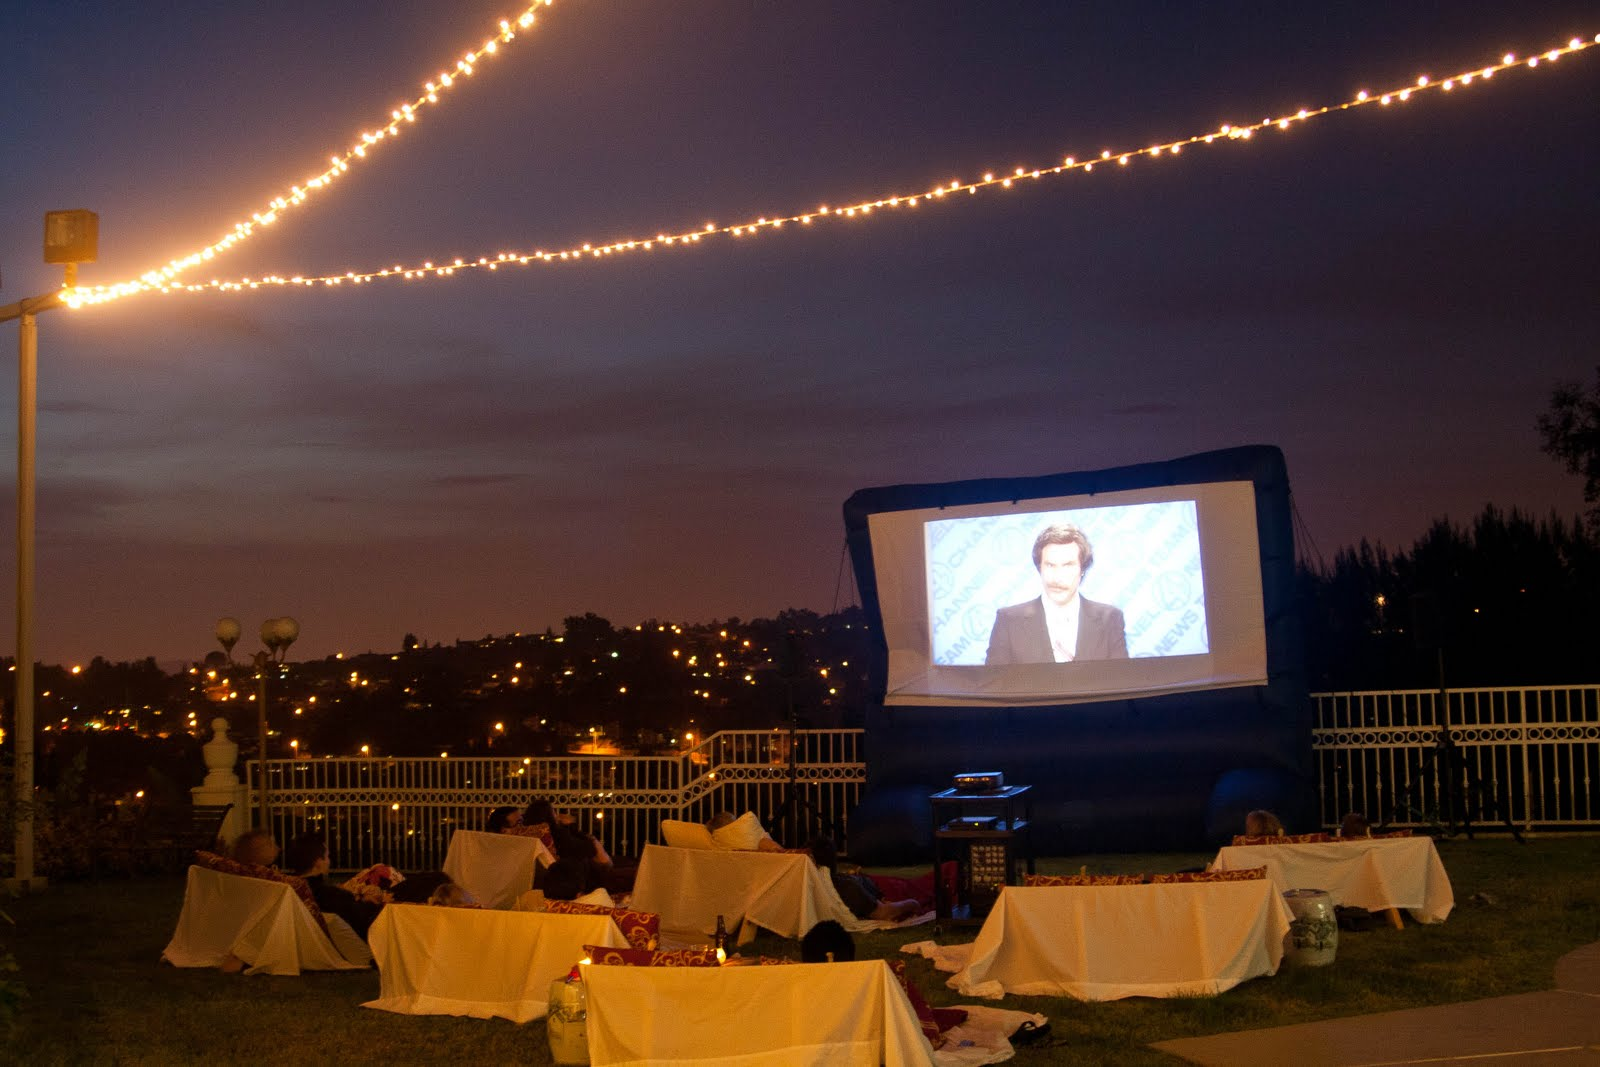 Diy Outdoor Movie Screen How To Make